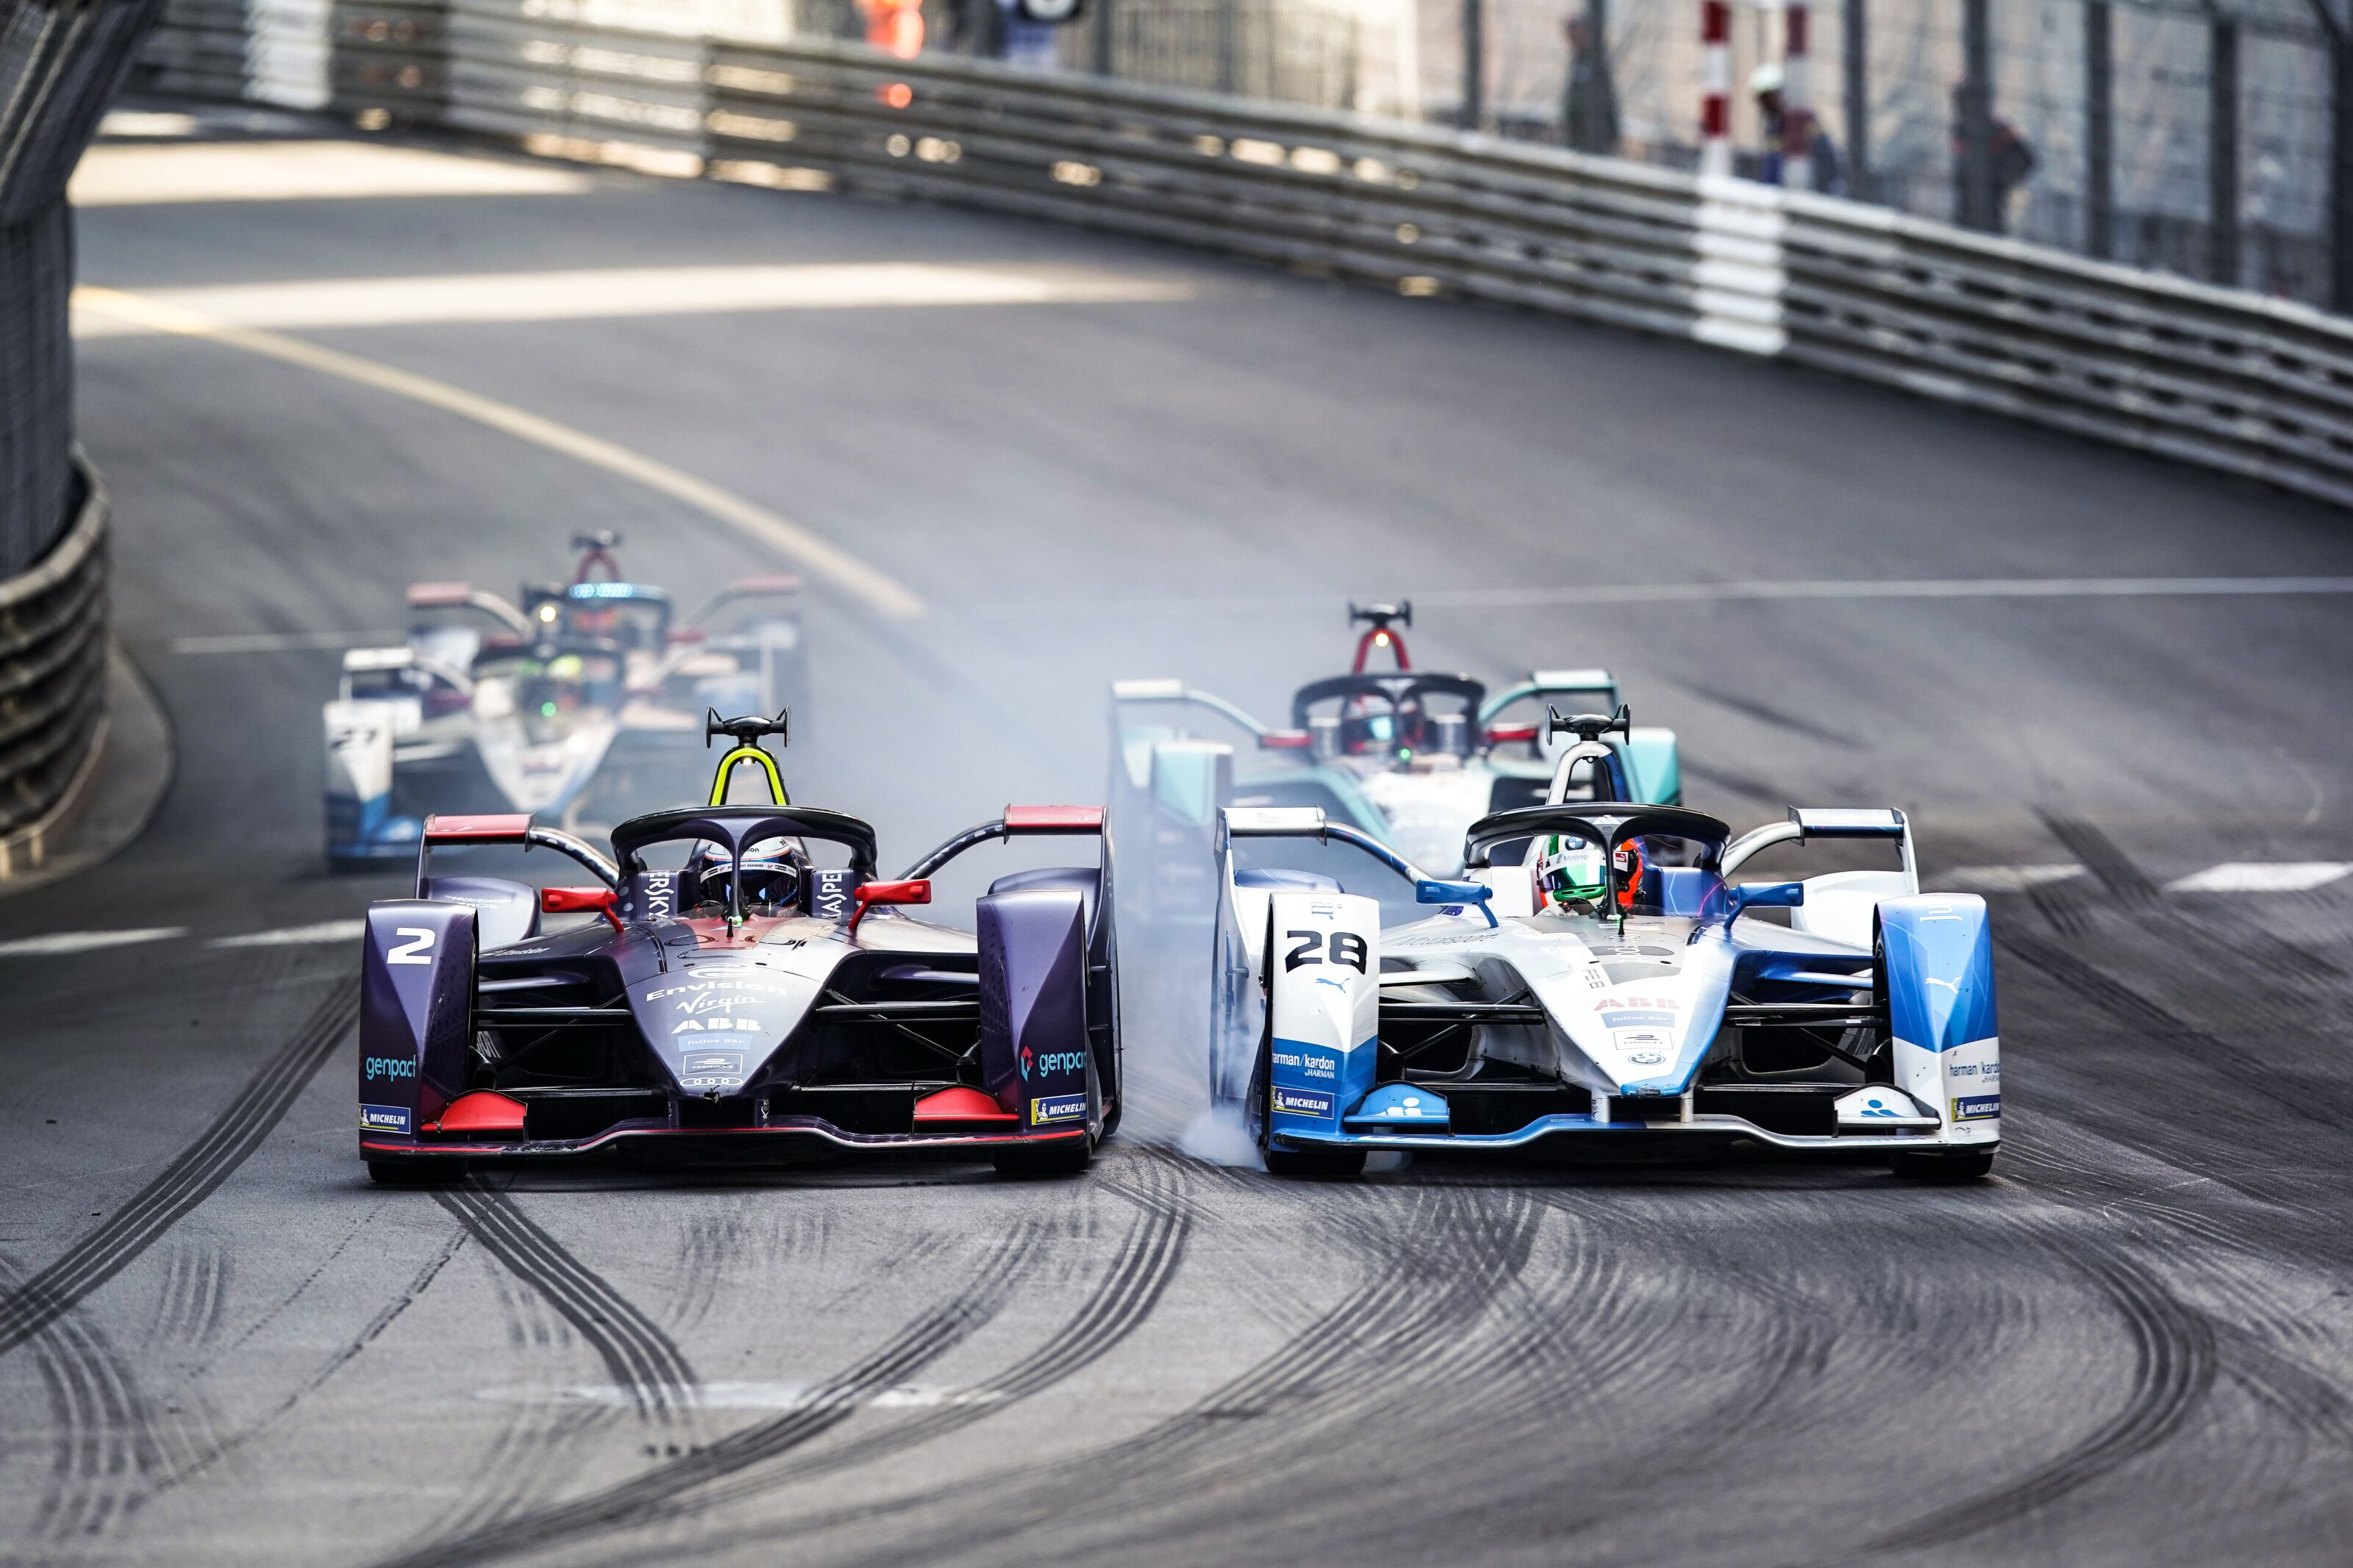 Formula E: Top 5 beginning to separate themselves in driver standings